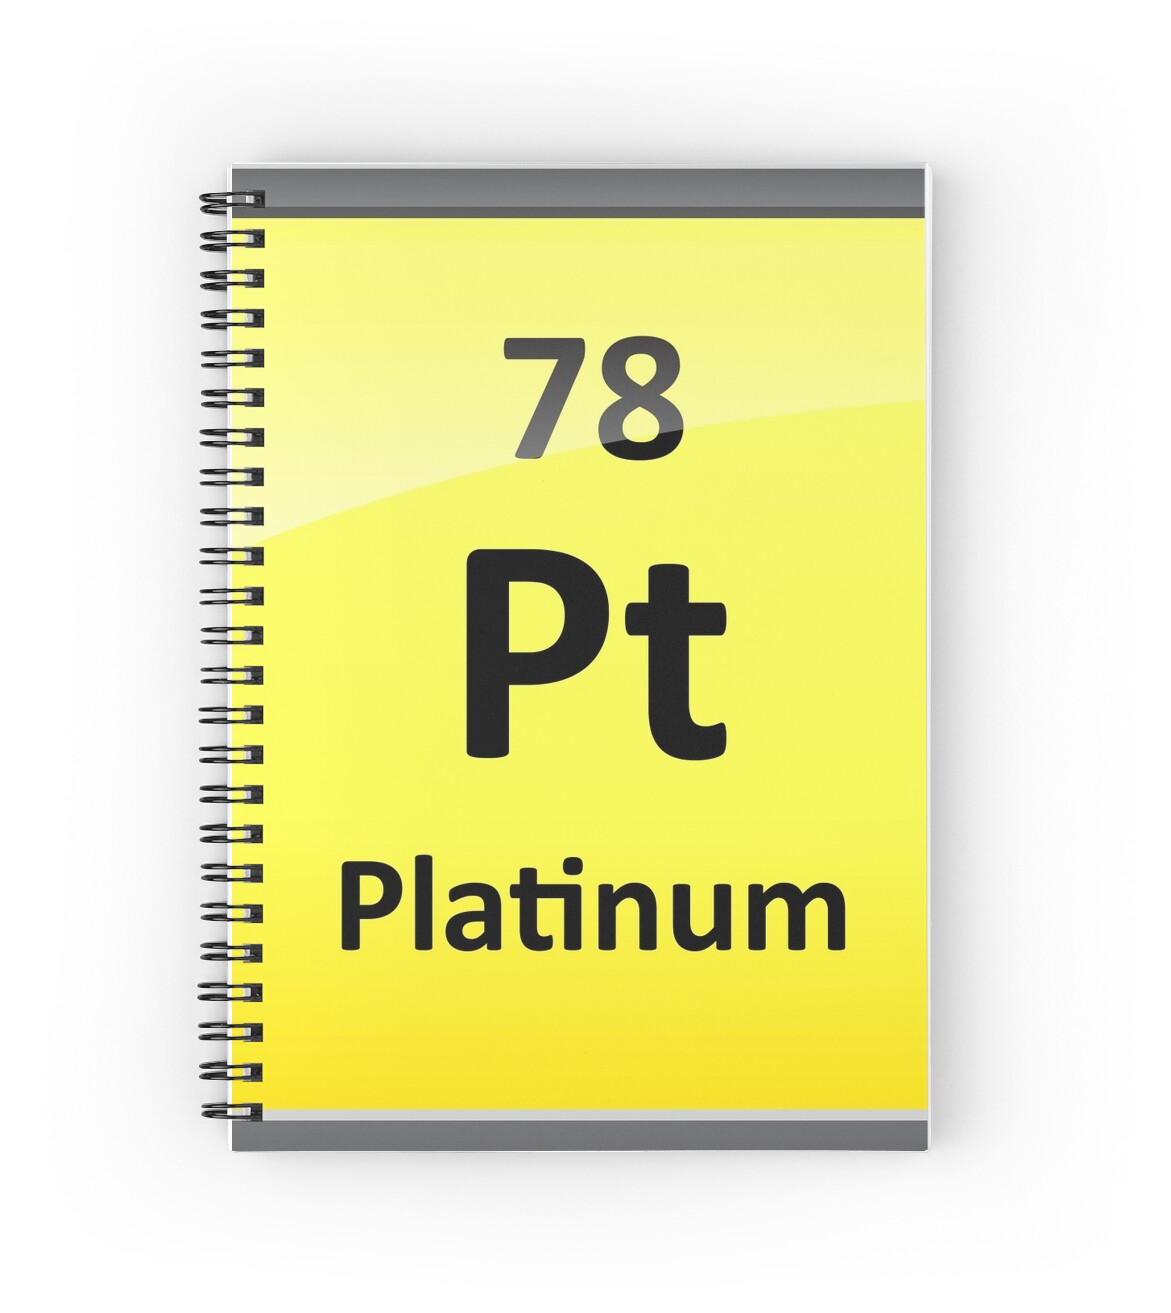 Periodic table symbol for platinum gallery periodic table images periodic table symbol for platinum gallery periodic table images periodic table symbol for platinum choice image gamestrikefo Image collections